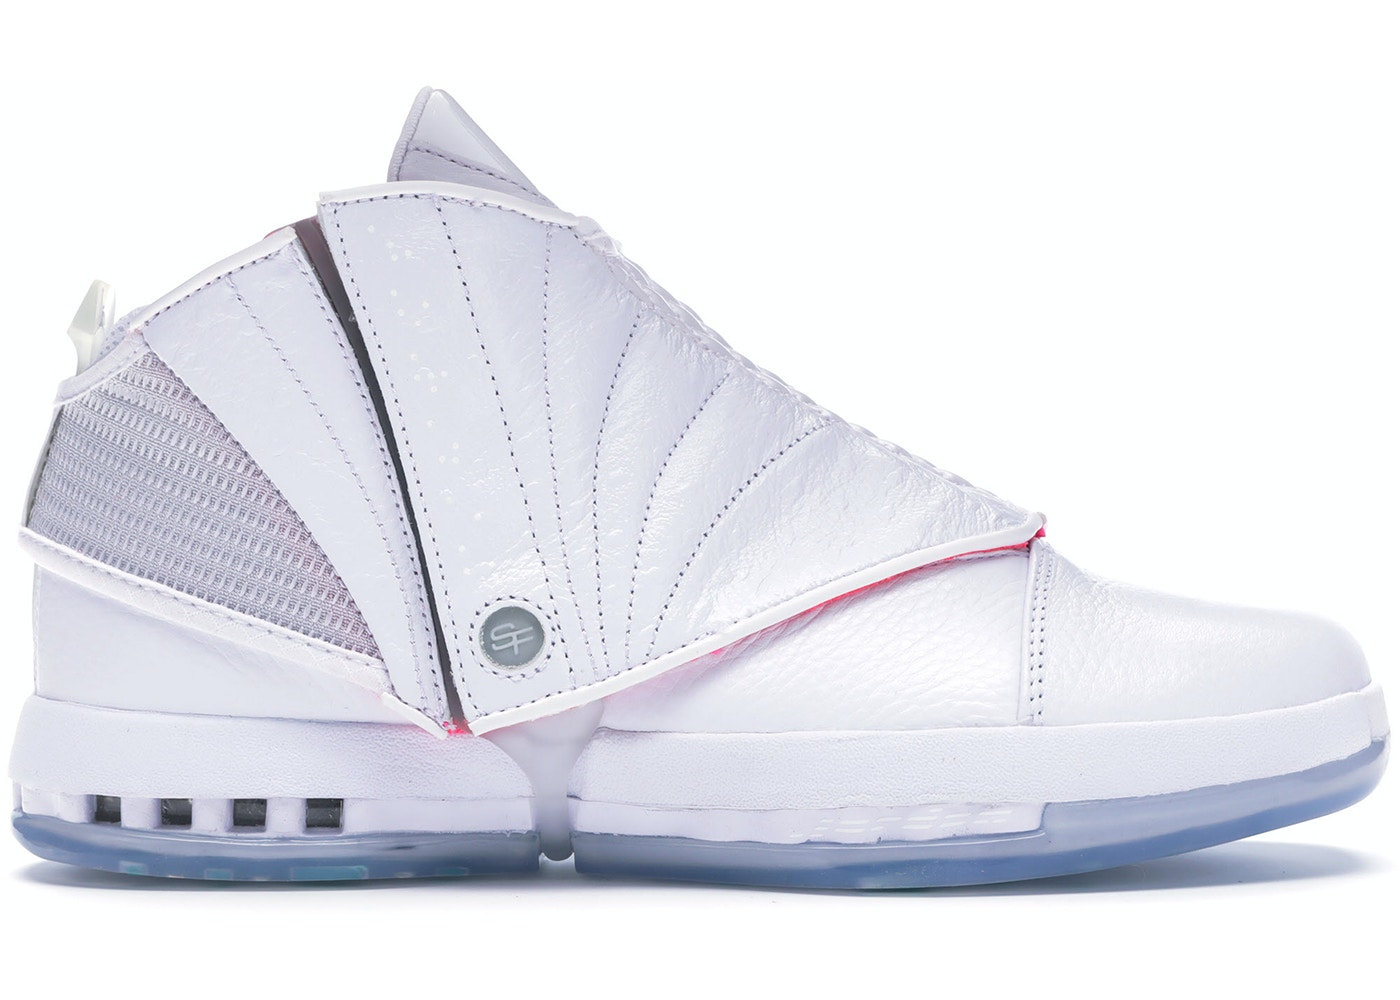 f1c3aa6d7 Buy Air Jordan 16 Shoes   Deadstock Sneakers